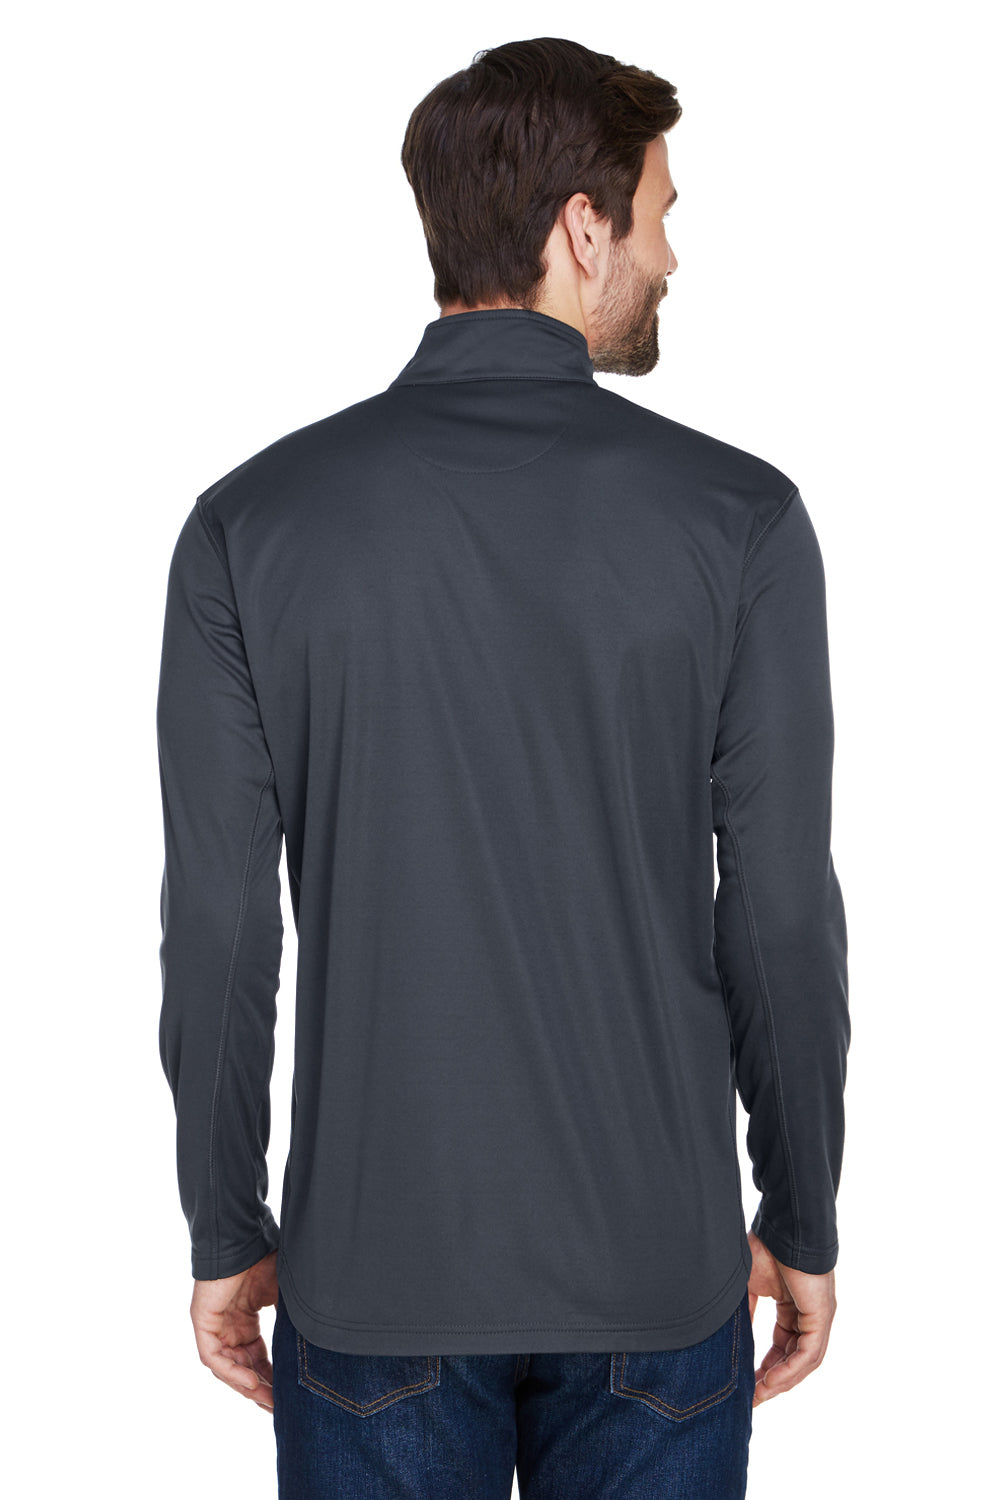 UltraClub 8230 Mens Cool & Dry Moisture Wicking 1/4 Zip Sweatshirt Black Back